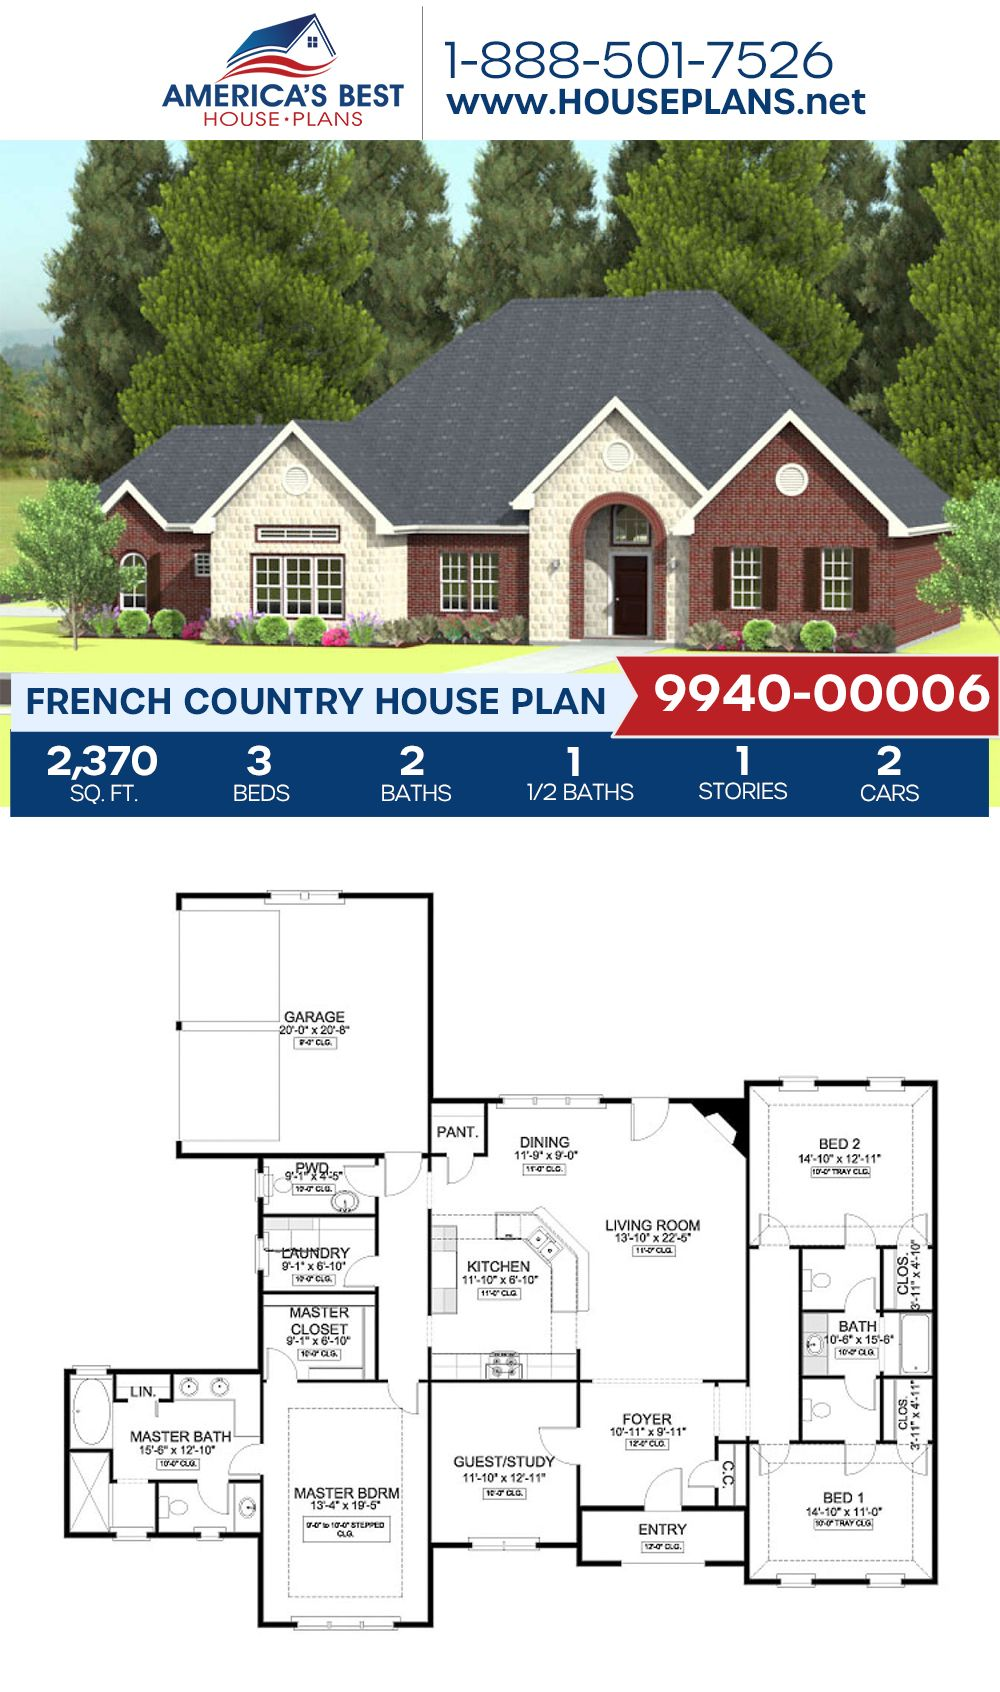 House Plan 9940 00006 French Country Plan 2 370 Square Feet 3 Bedrooms 2 5 Bathrooms In 2020 French Country House Plans French Country House House Plans